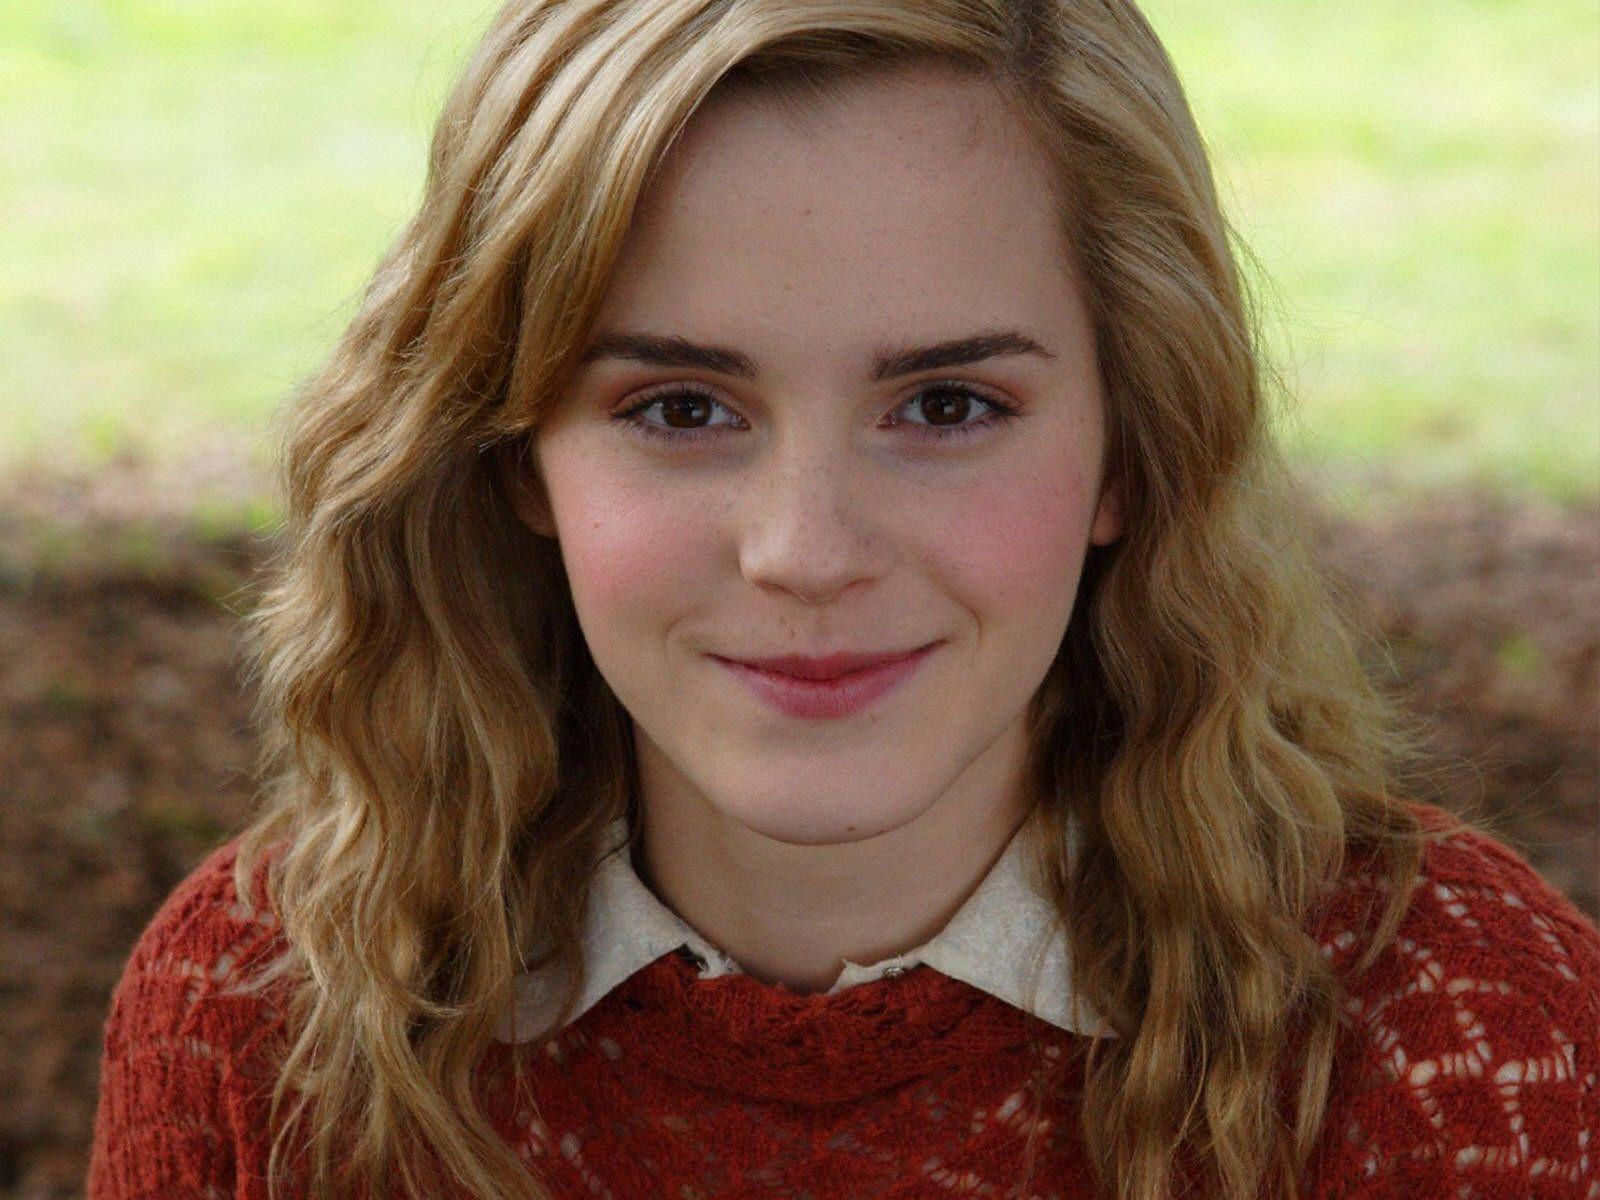 Emma Watson Wallpapers Gallery ~ Sheryali | News, Tips ...